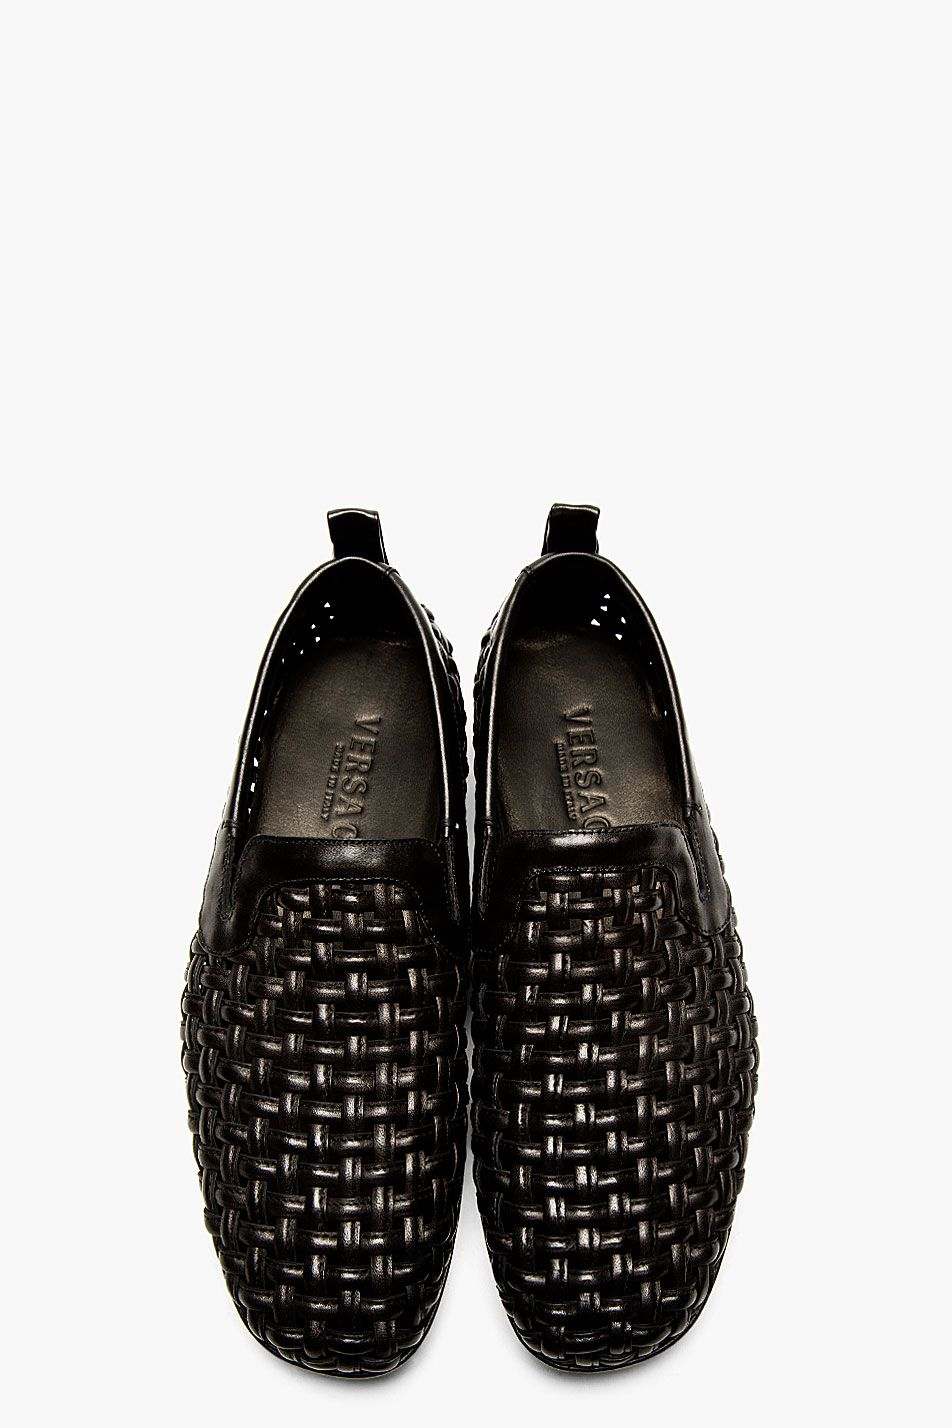 e0230c226a5 VERSACE Black Leather Basket Weave Loafers